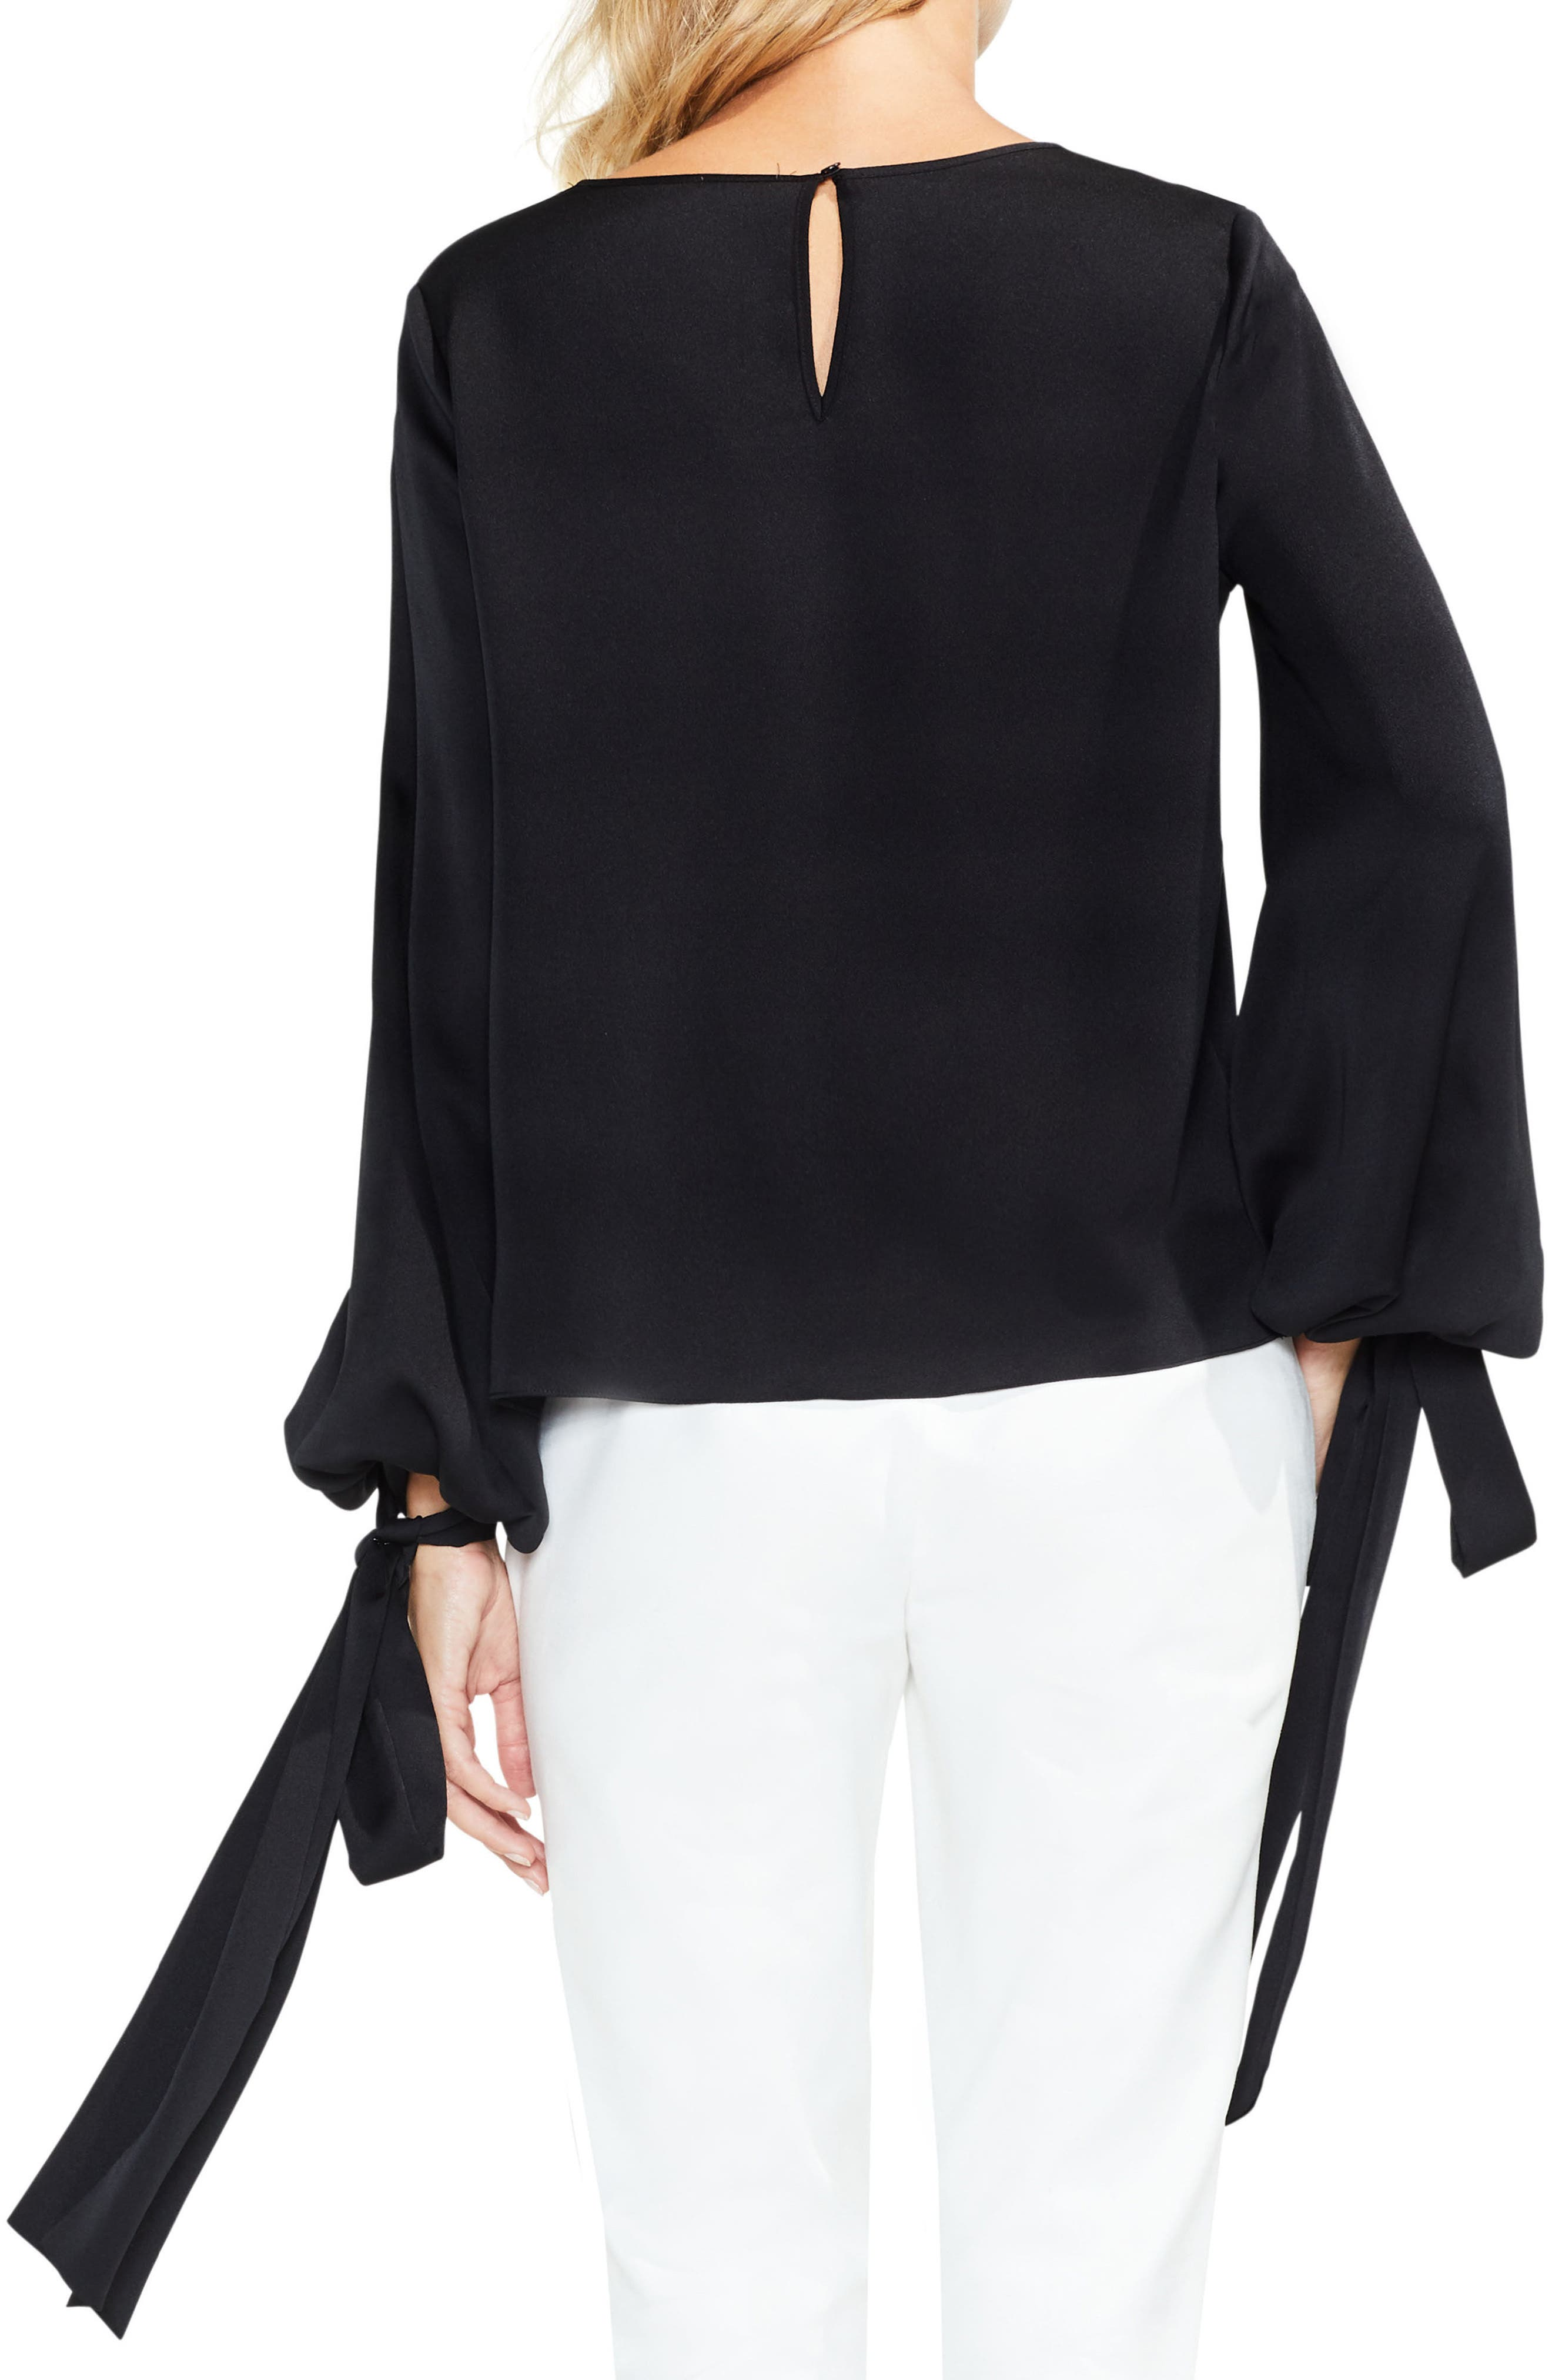 Alternate Image 2  - Vince Camuto Tie Cuff Bubble Sleeve Blouse (Regular & Petite)